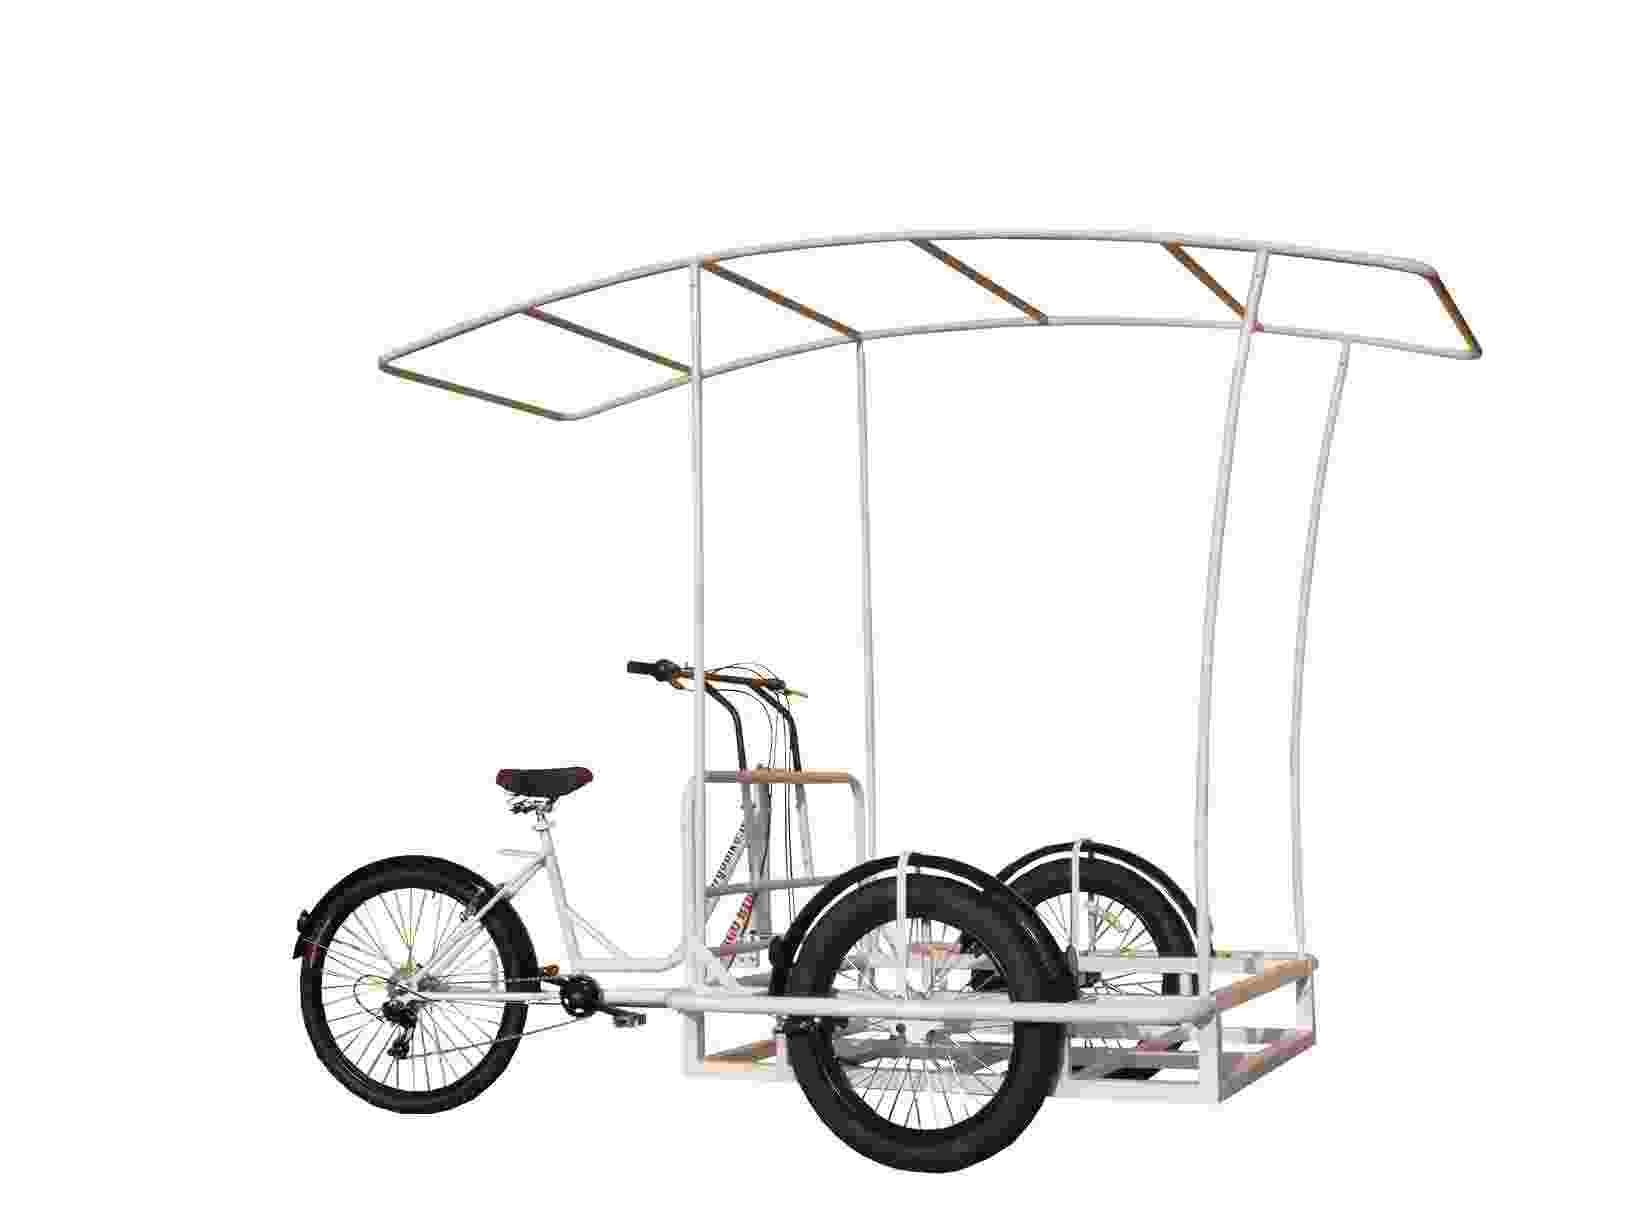 CATALOG AND PRICE LIST OF CARGO BIKES, CARGO TRICYCLES, TRAILERS FOR ...